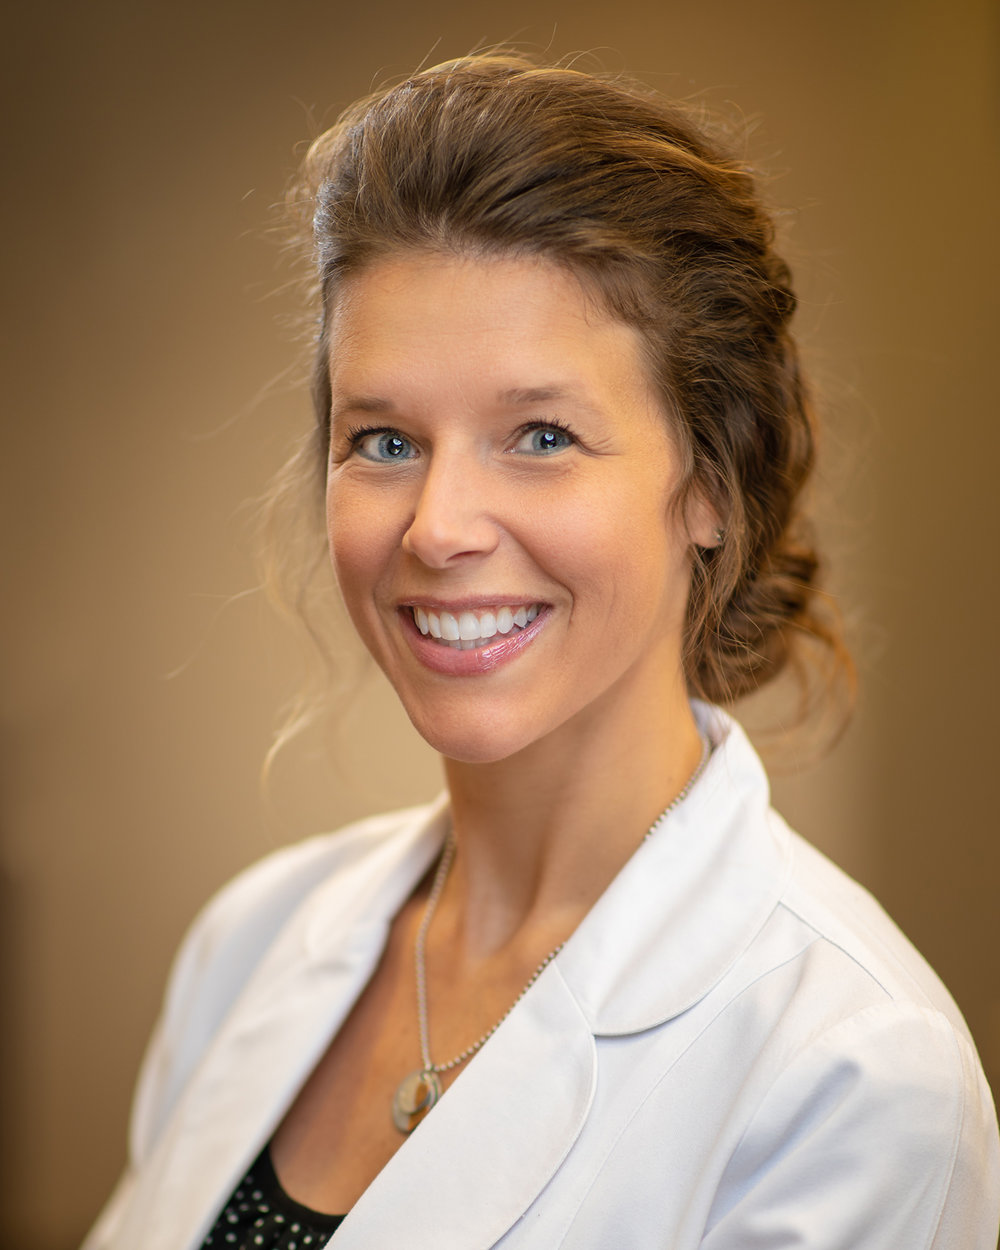 Jynell - Lead Hygienist - Jynell is a compassionate hygeinist who's #1 priority is patient comfort.